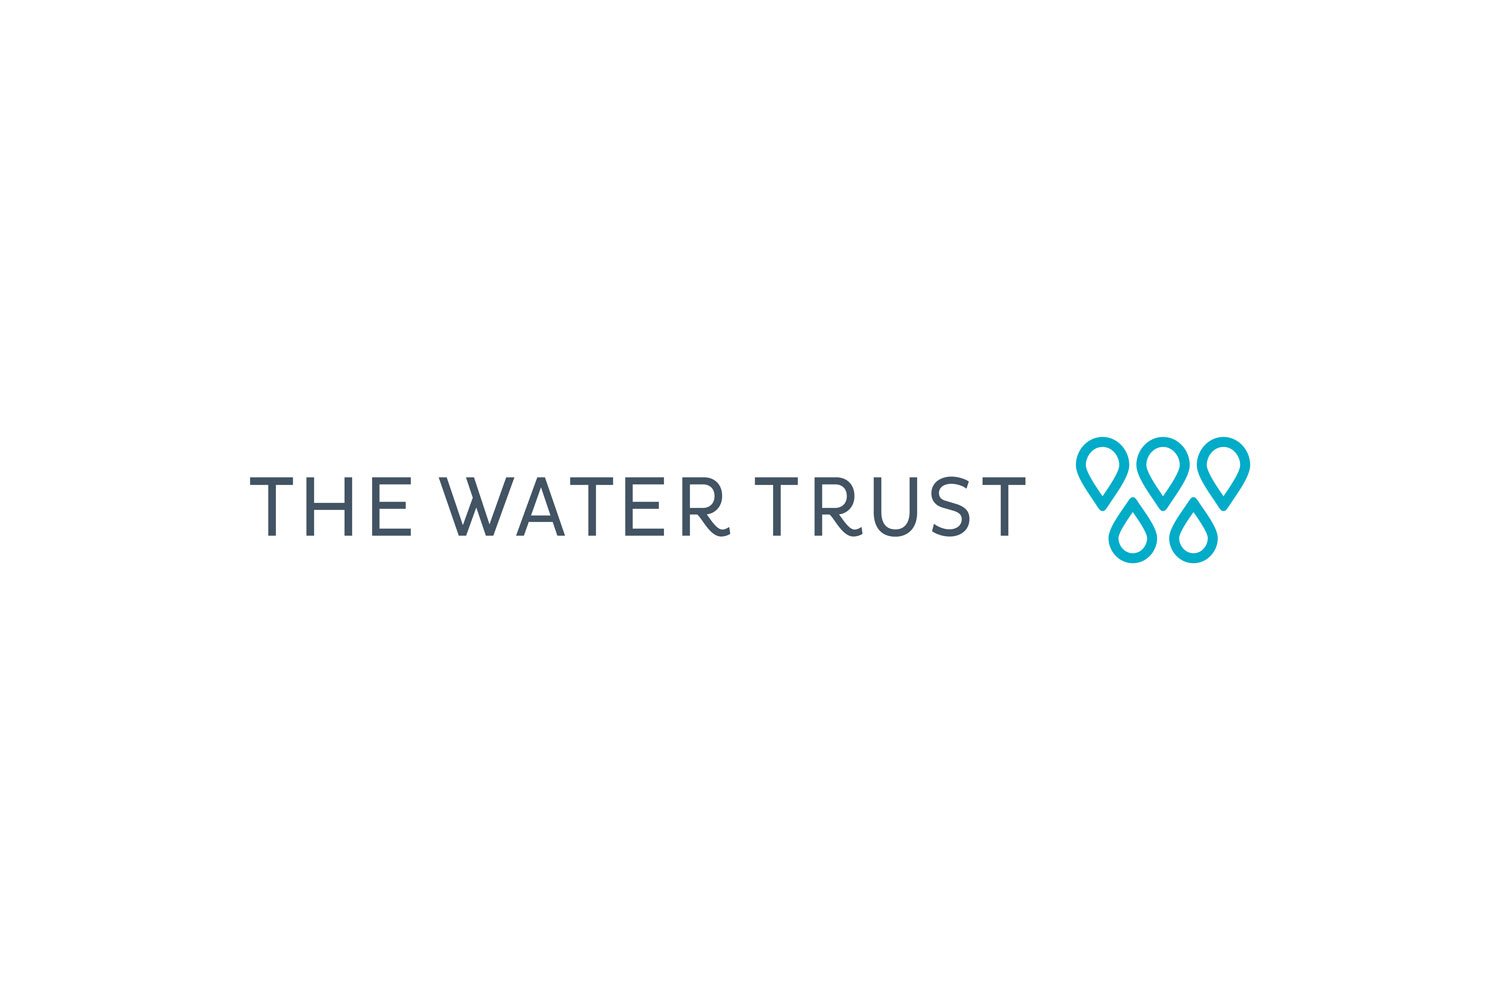 The Water Trust proposed logo